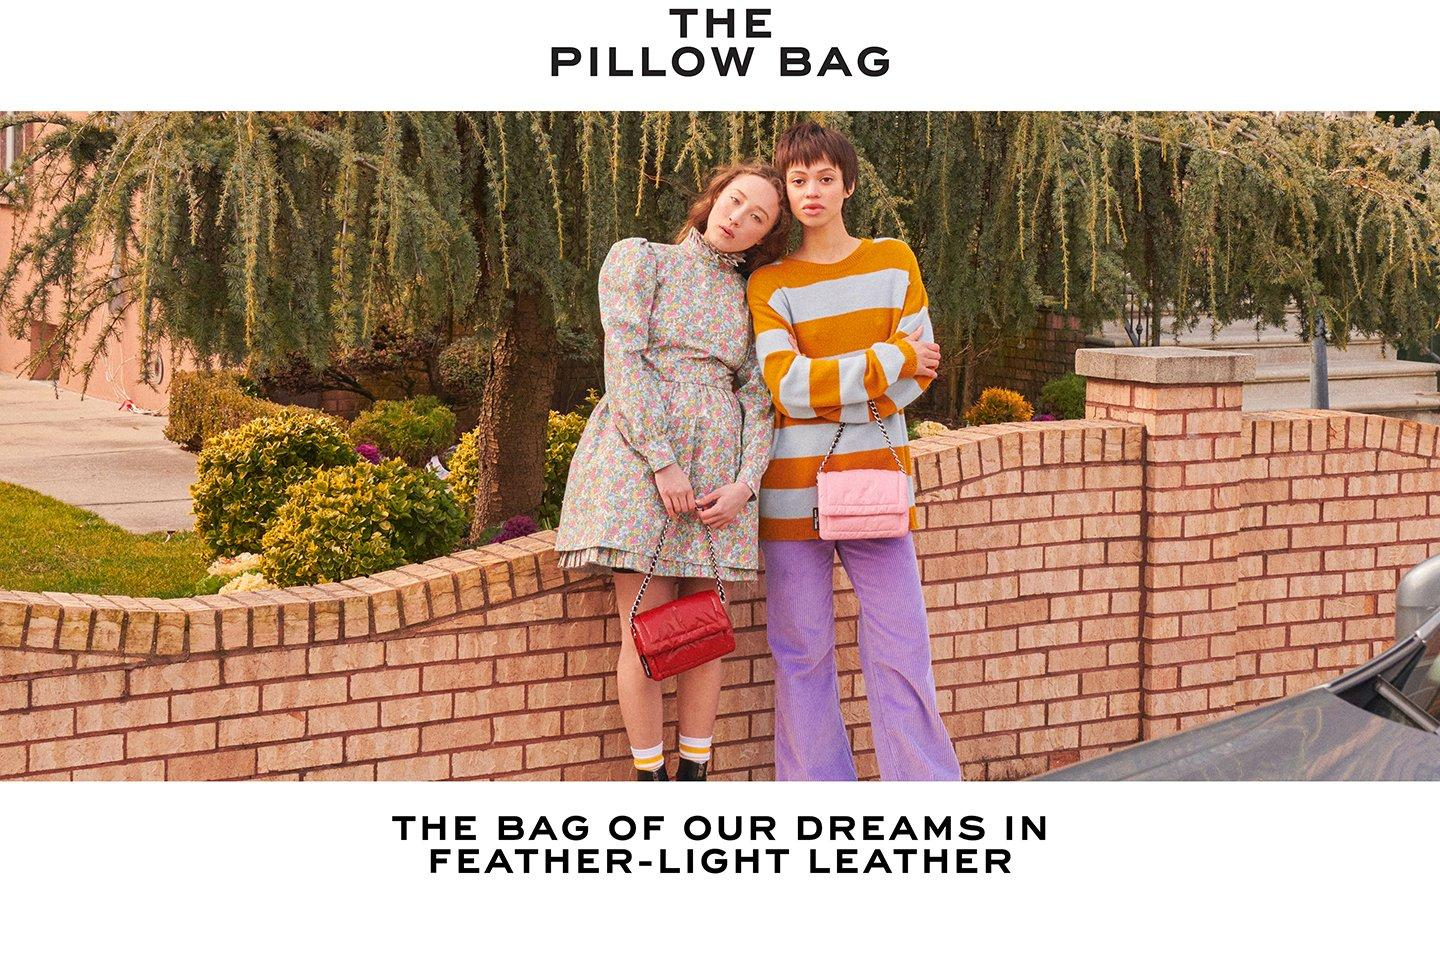 The Pillow Bag. The bag of our dreams in feather-light leather